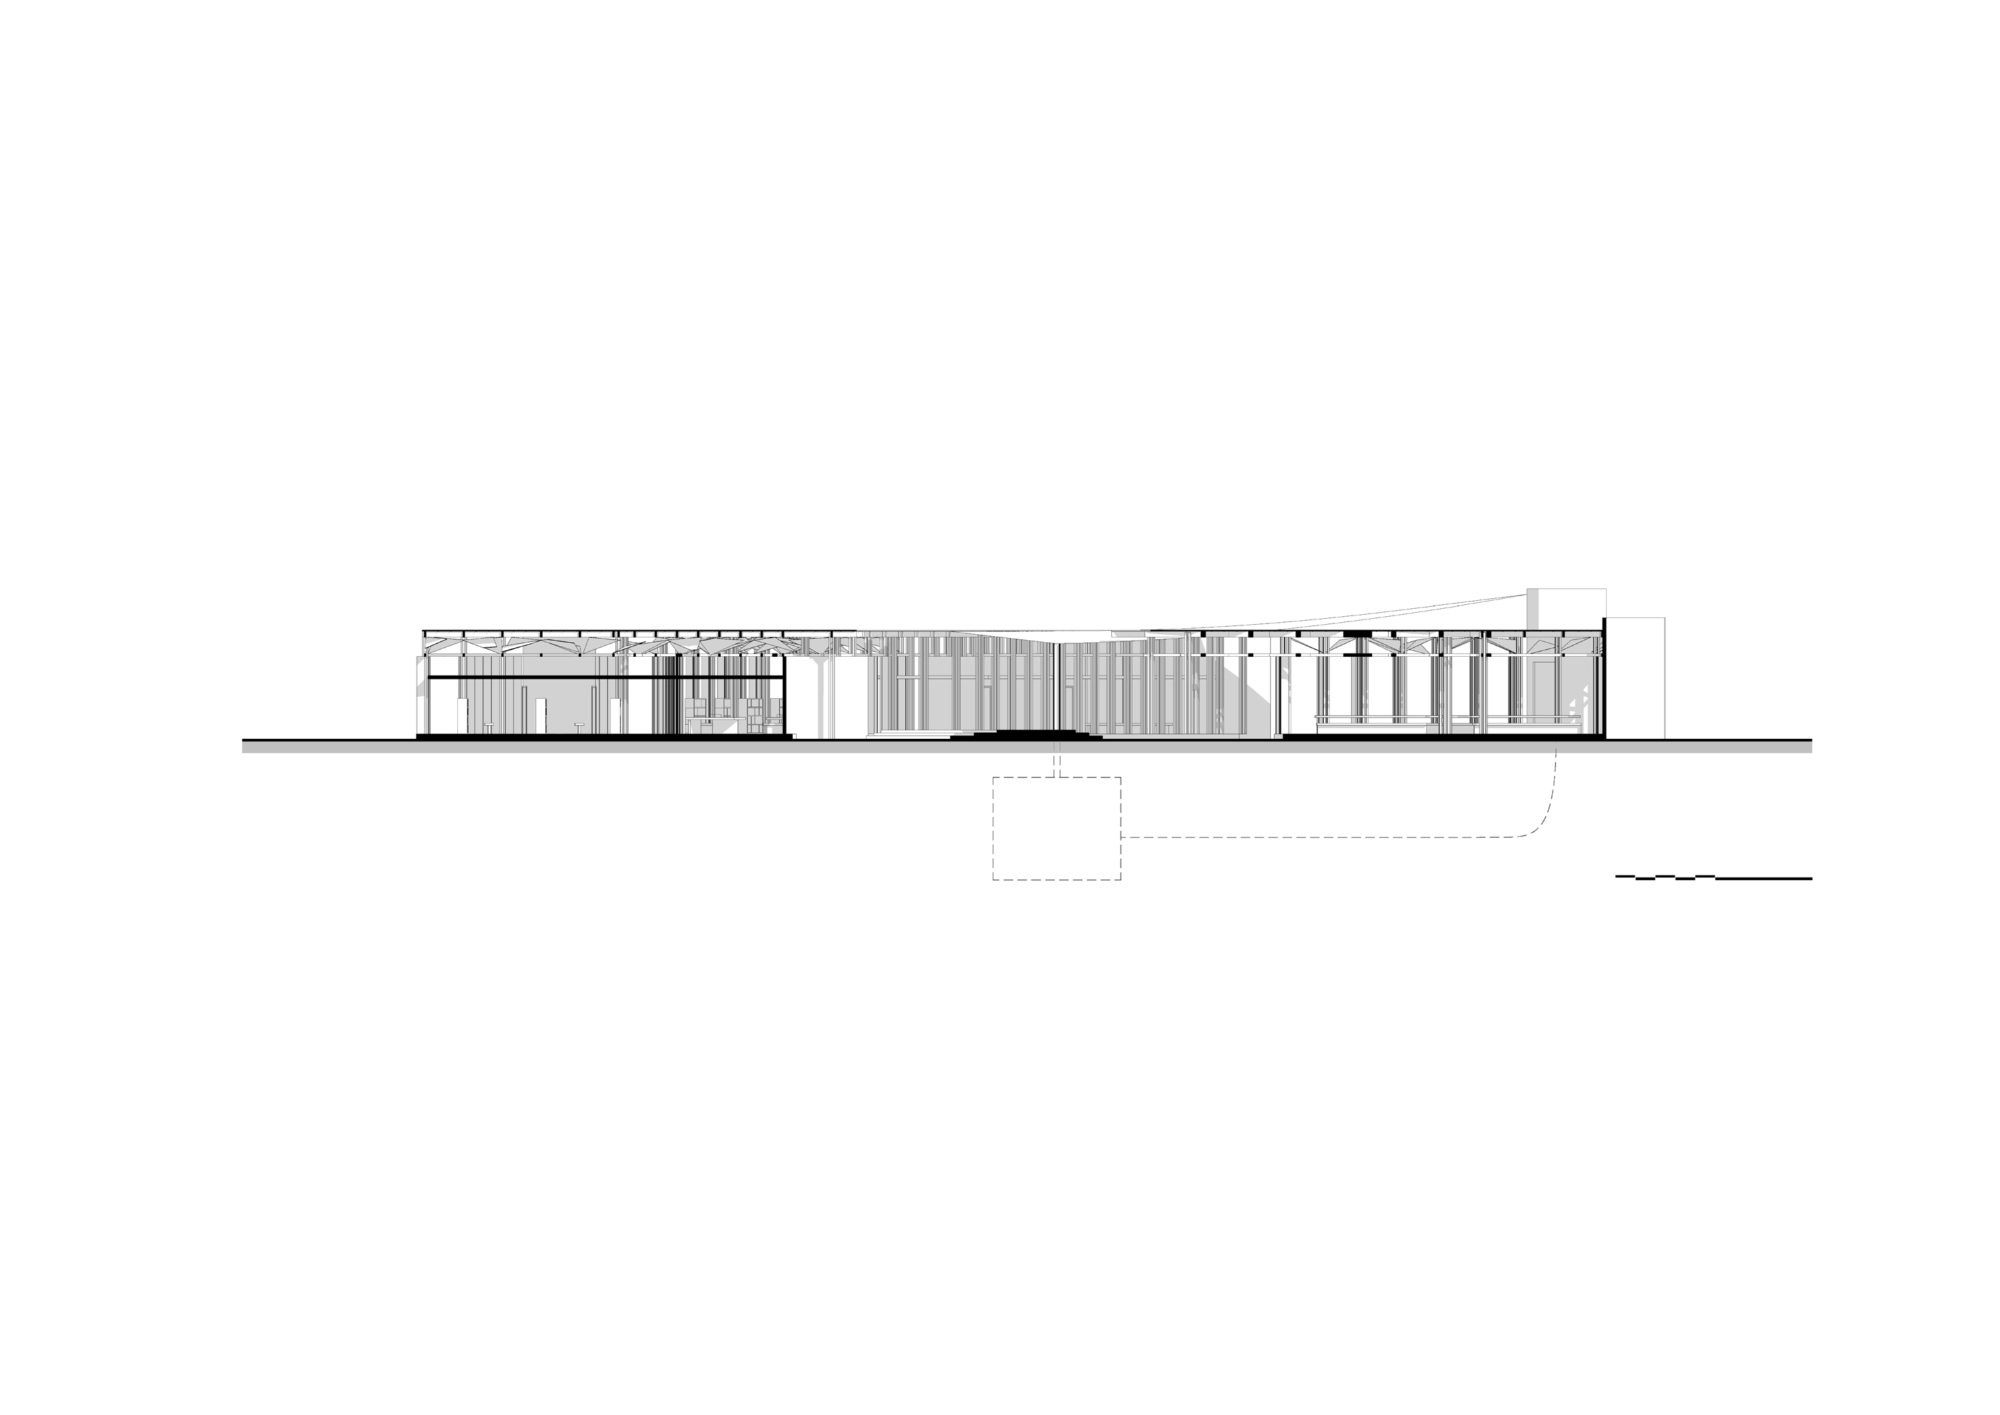 Section. / Women's House in Senegal. Kaira Looro architecture competition.